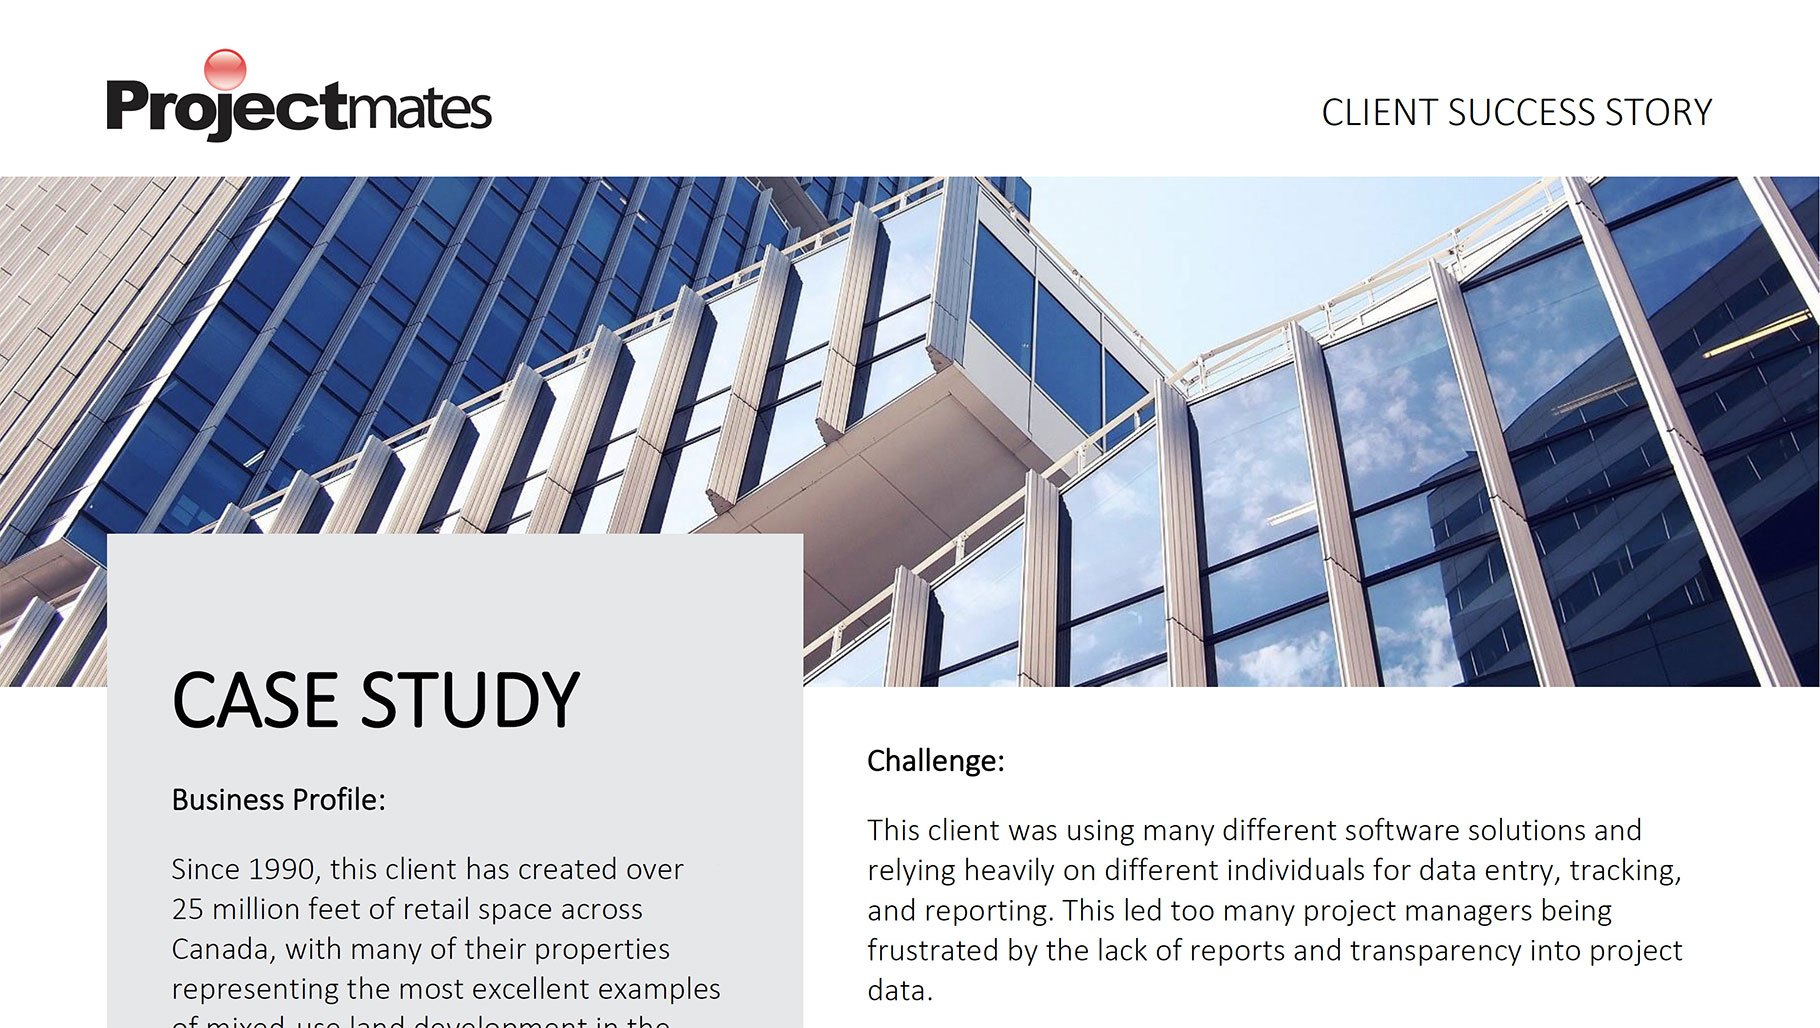 Image of client success story case study